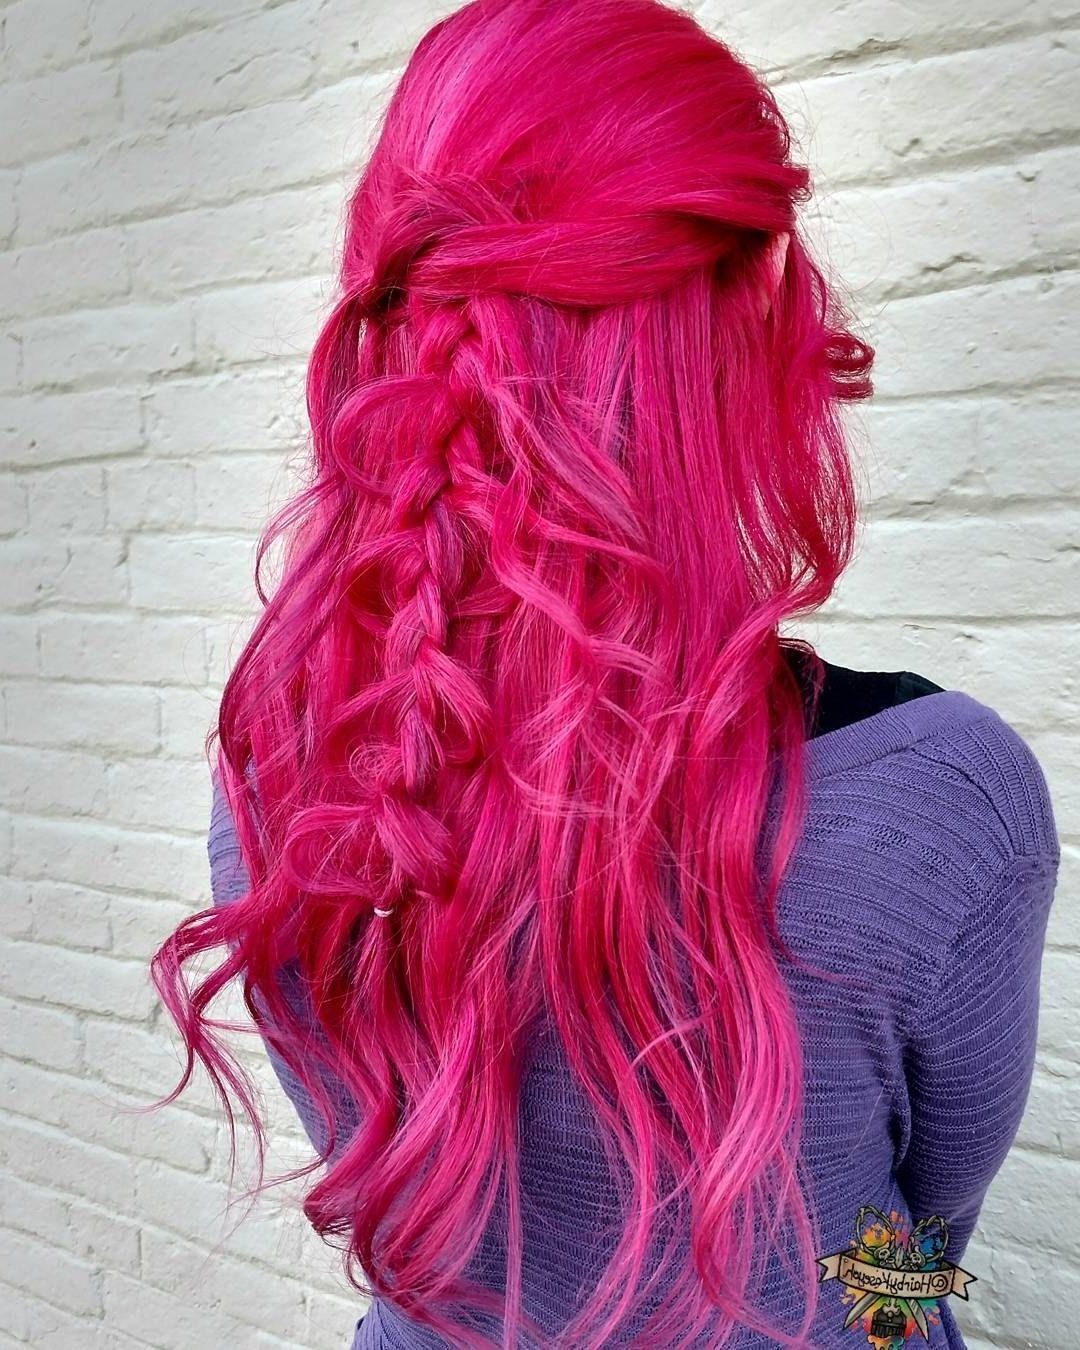 Newest Cotton Candy Colors Blend Mermaid Braid Hairstyles In Manic Panic Hot Hot Pink #pinkaesthetic #hair Mermaid Colour (View 12 of 20)